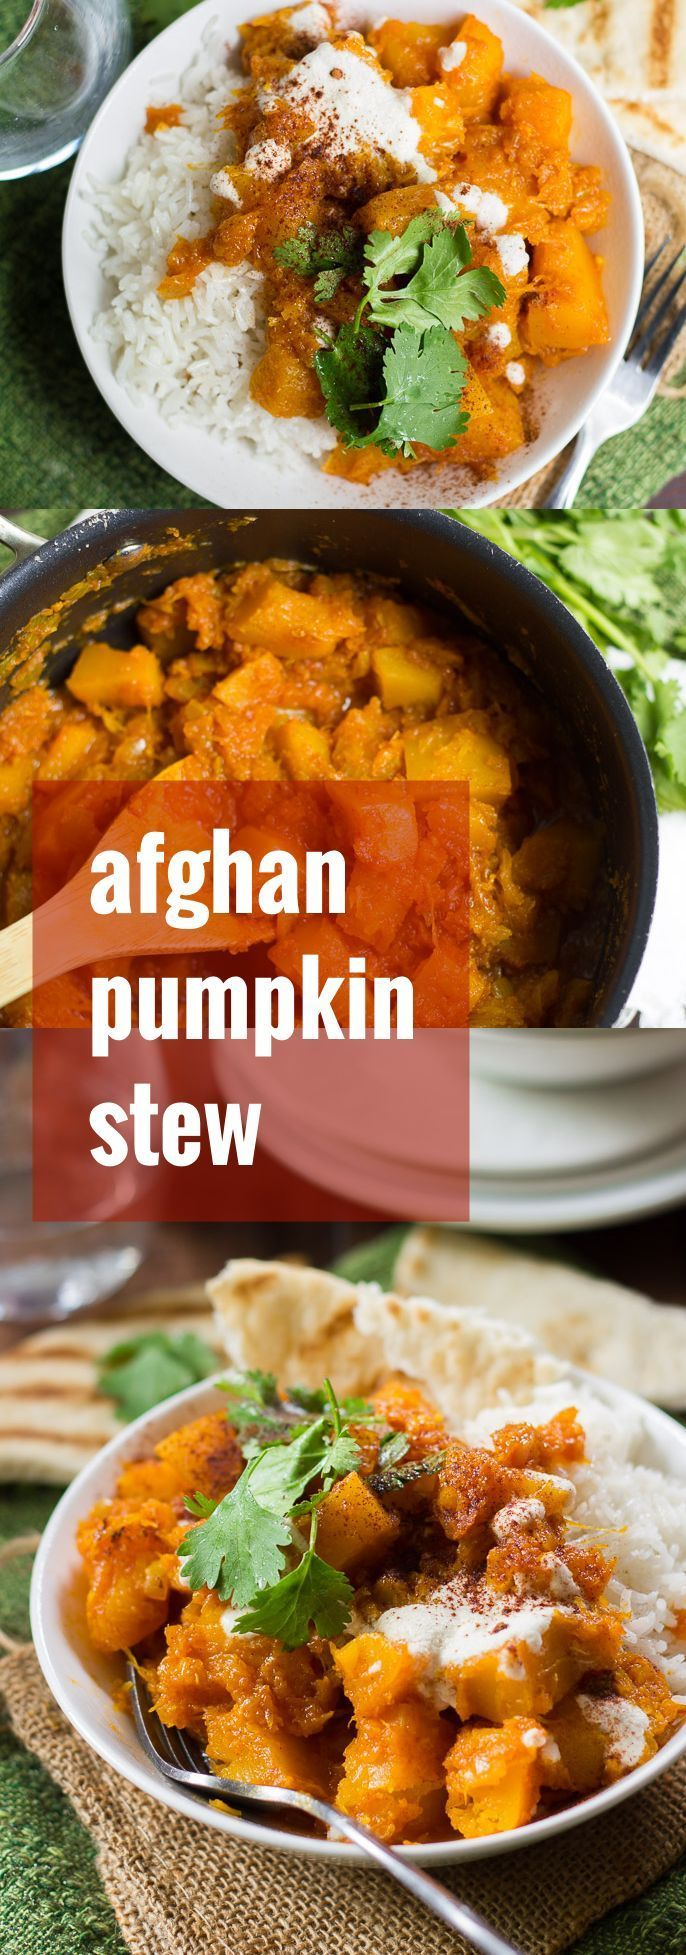 Juicy chunks of sugar pumpkin are simmered in tomato sauce with spices, then served over basmati rice with cashew cream to make this Afghan-inspired pumpkin stew!